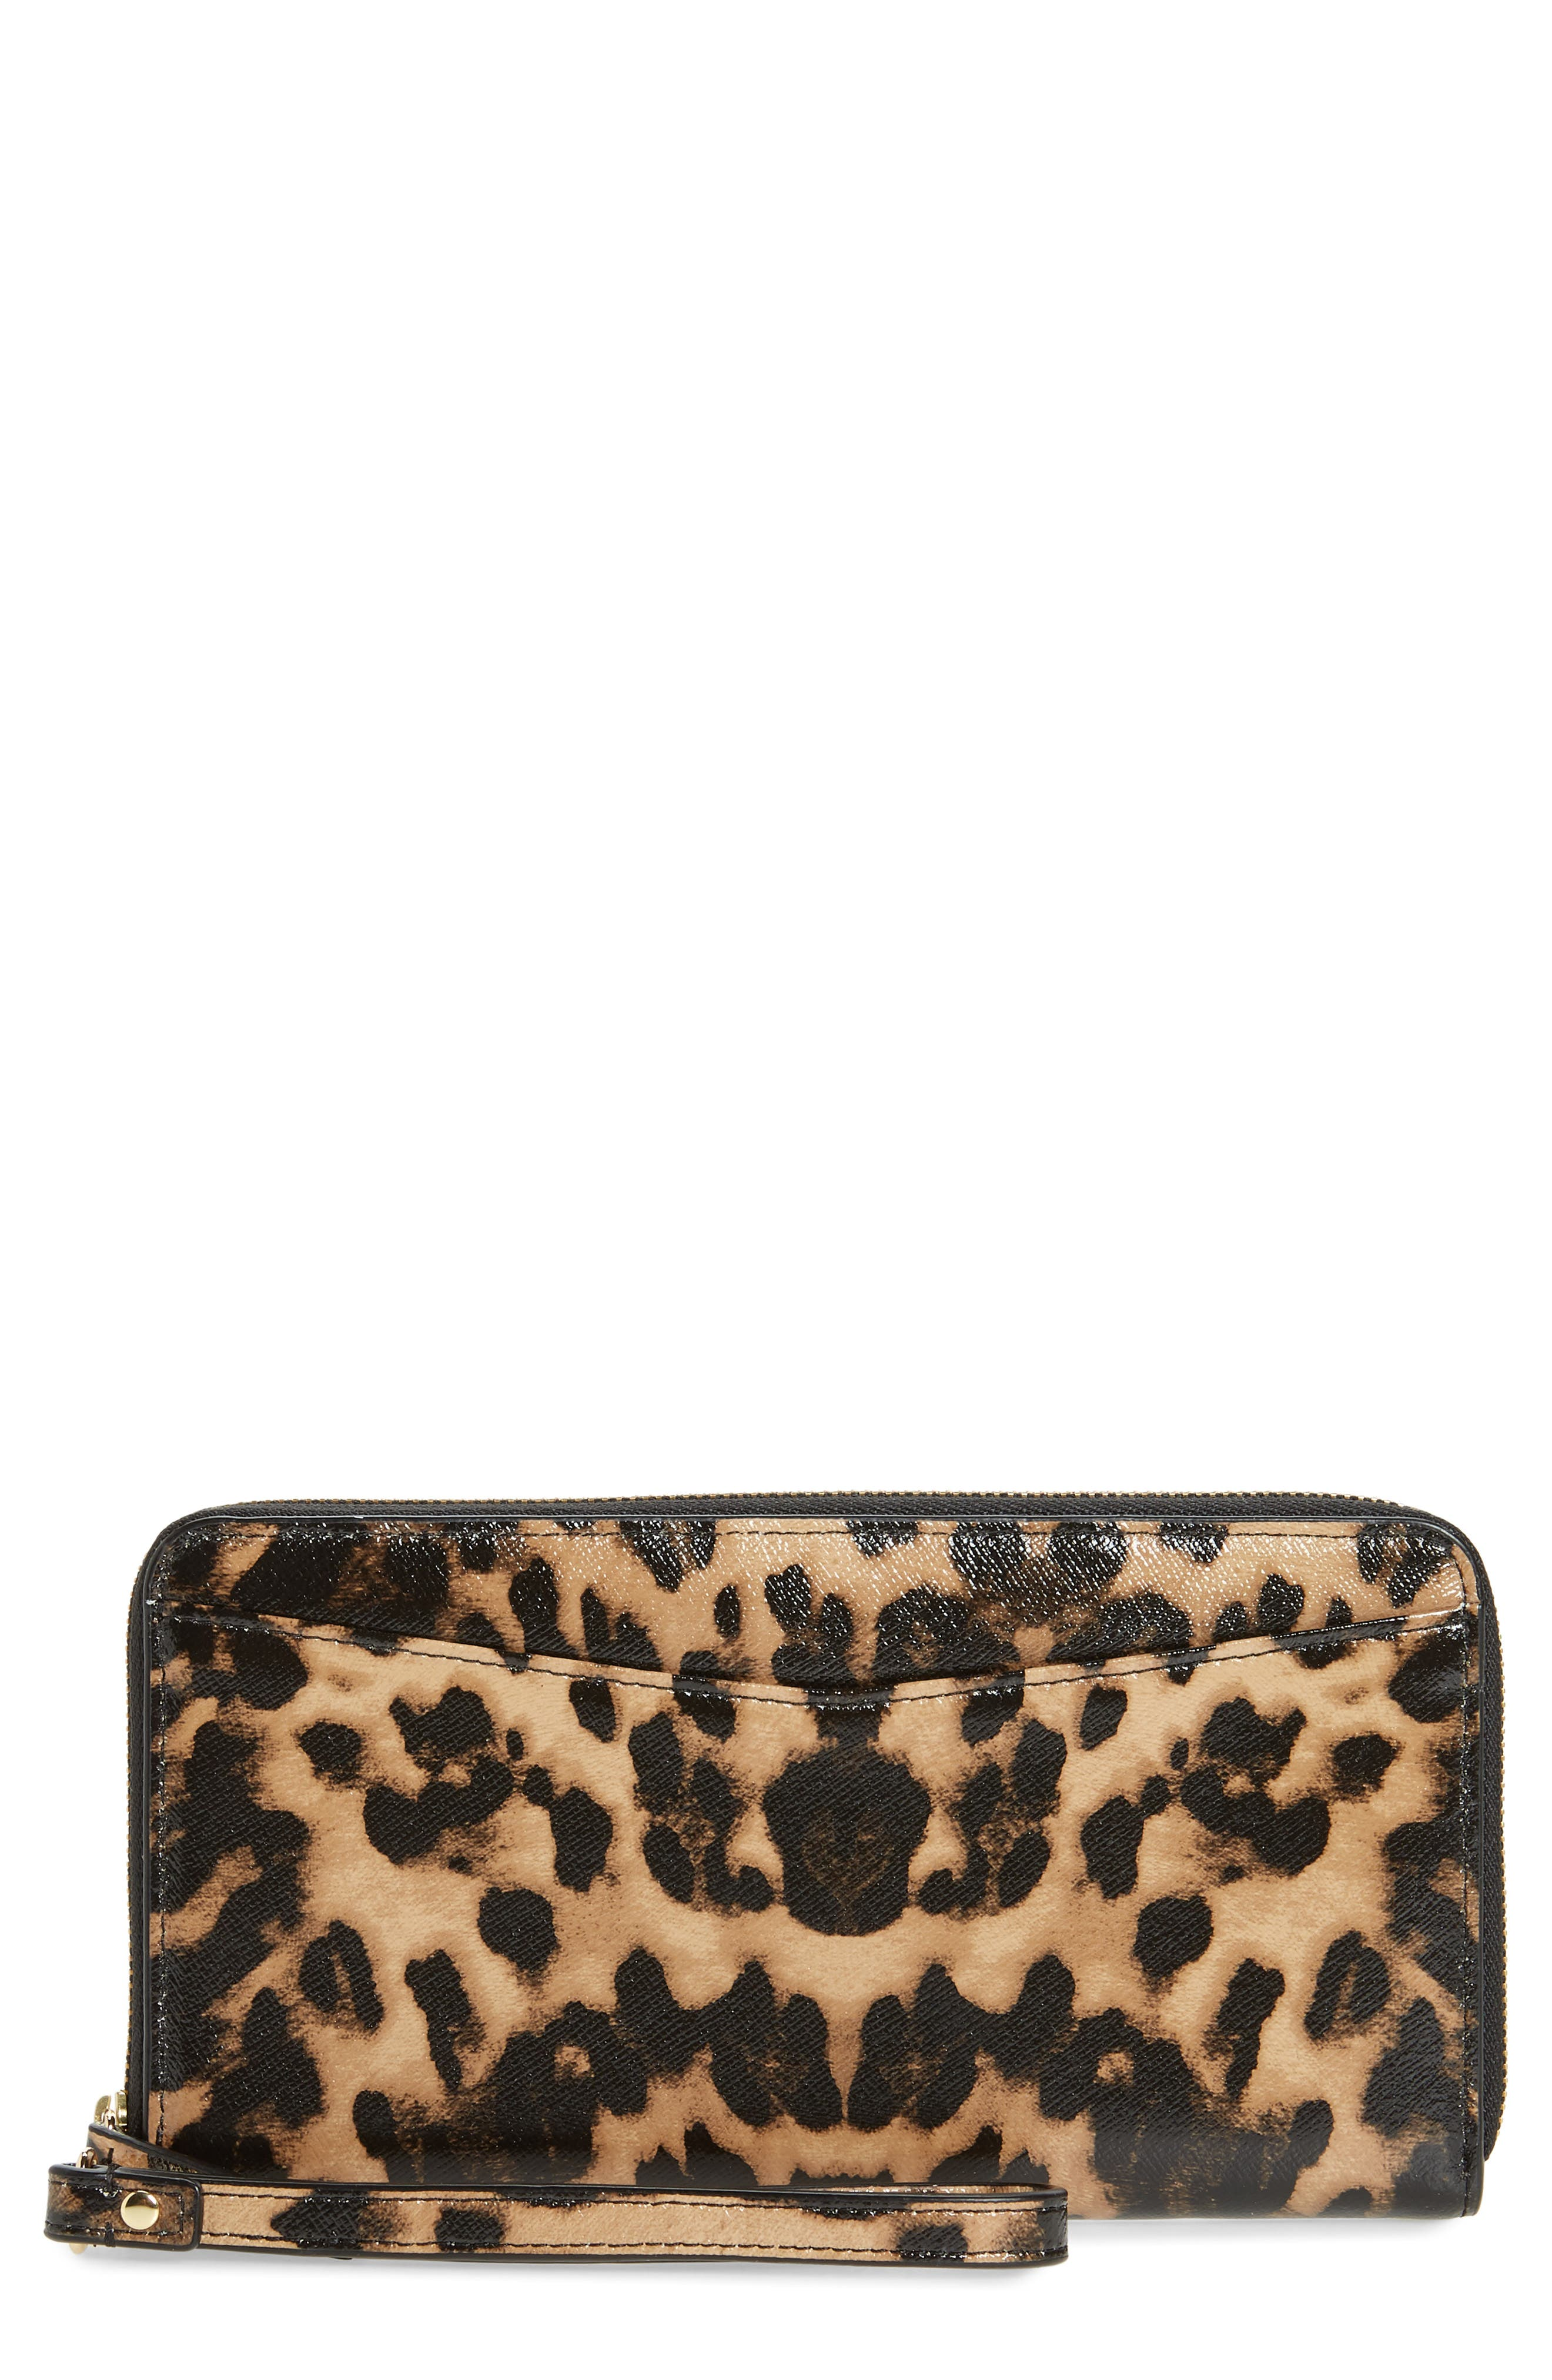 A wrist strap offers clutch styling on this zip-around leather wallet with a luxe animal pattern. Style Name: Nordstrom Leather Continental Wallet. Style Number: 5960088. Available in stores.